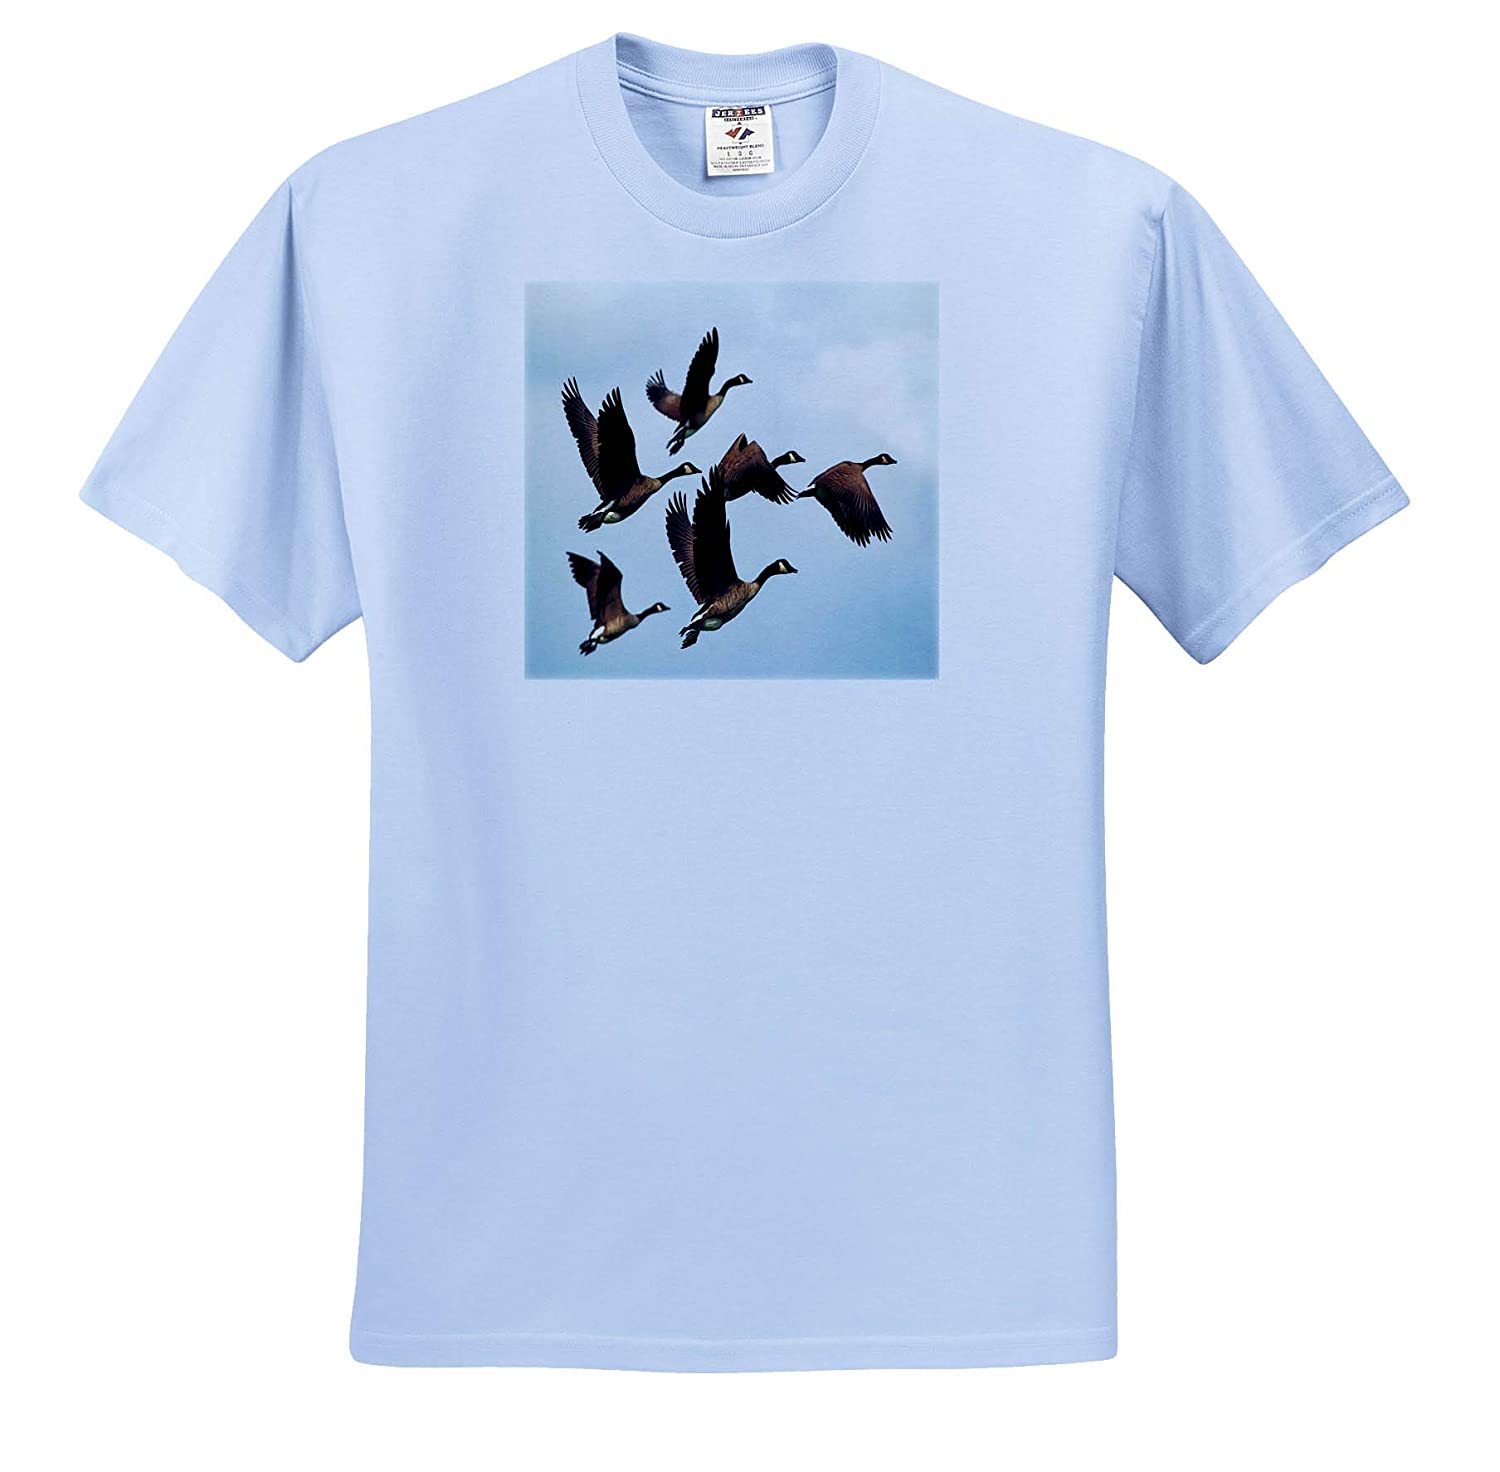 Image of Group of Flying Canadian Geese Birds II 3dRose Lens Art by Florene T-Shirts